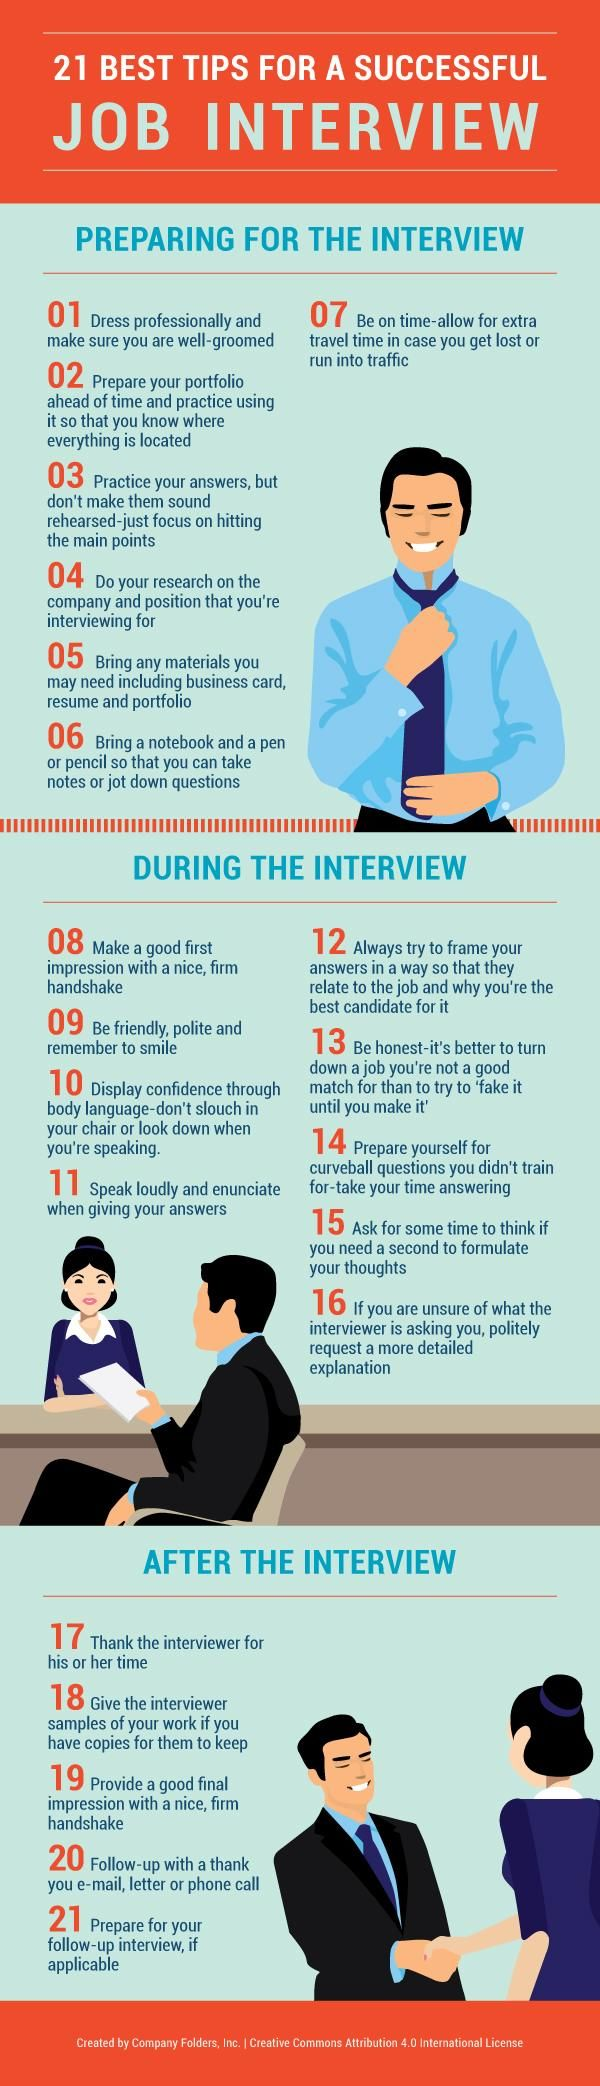 Interview Tips by Skip Prichard 100 best